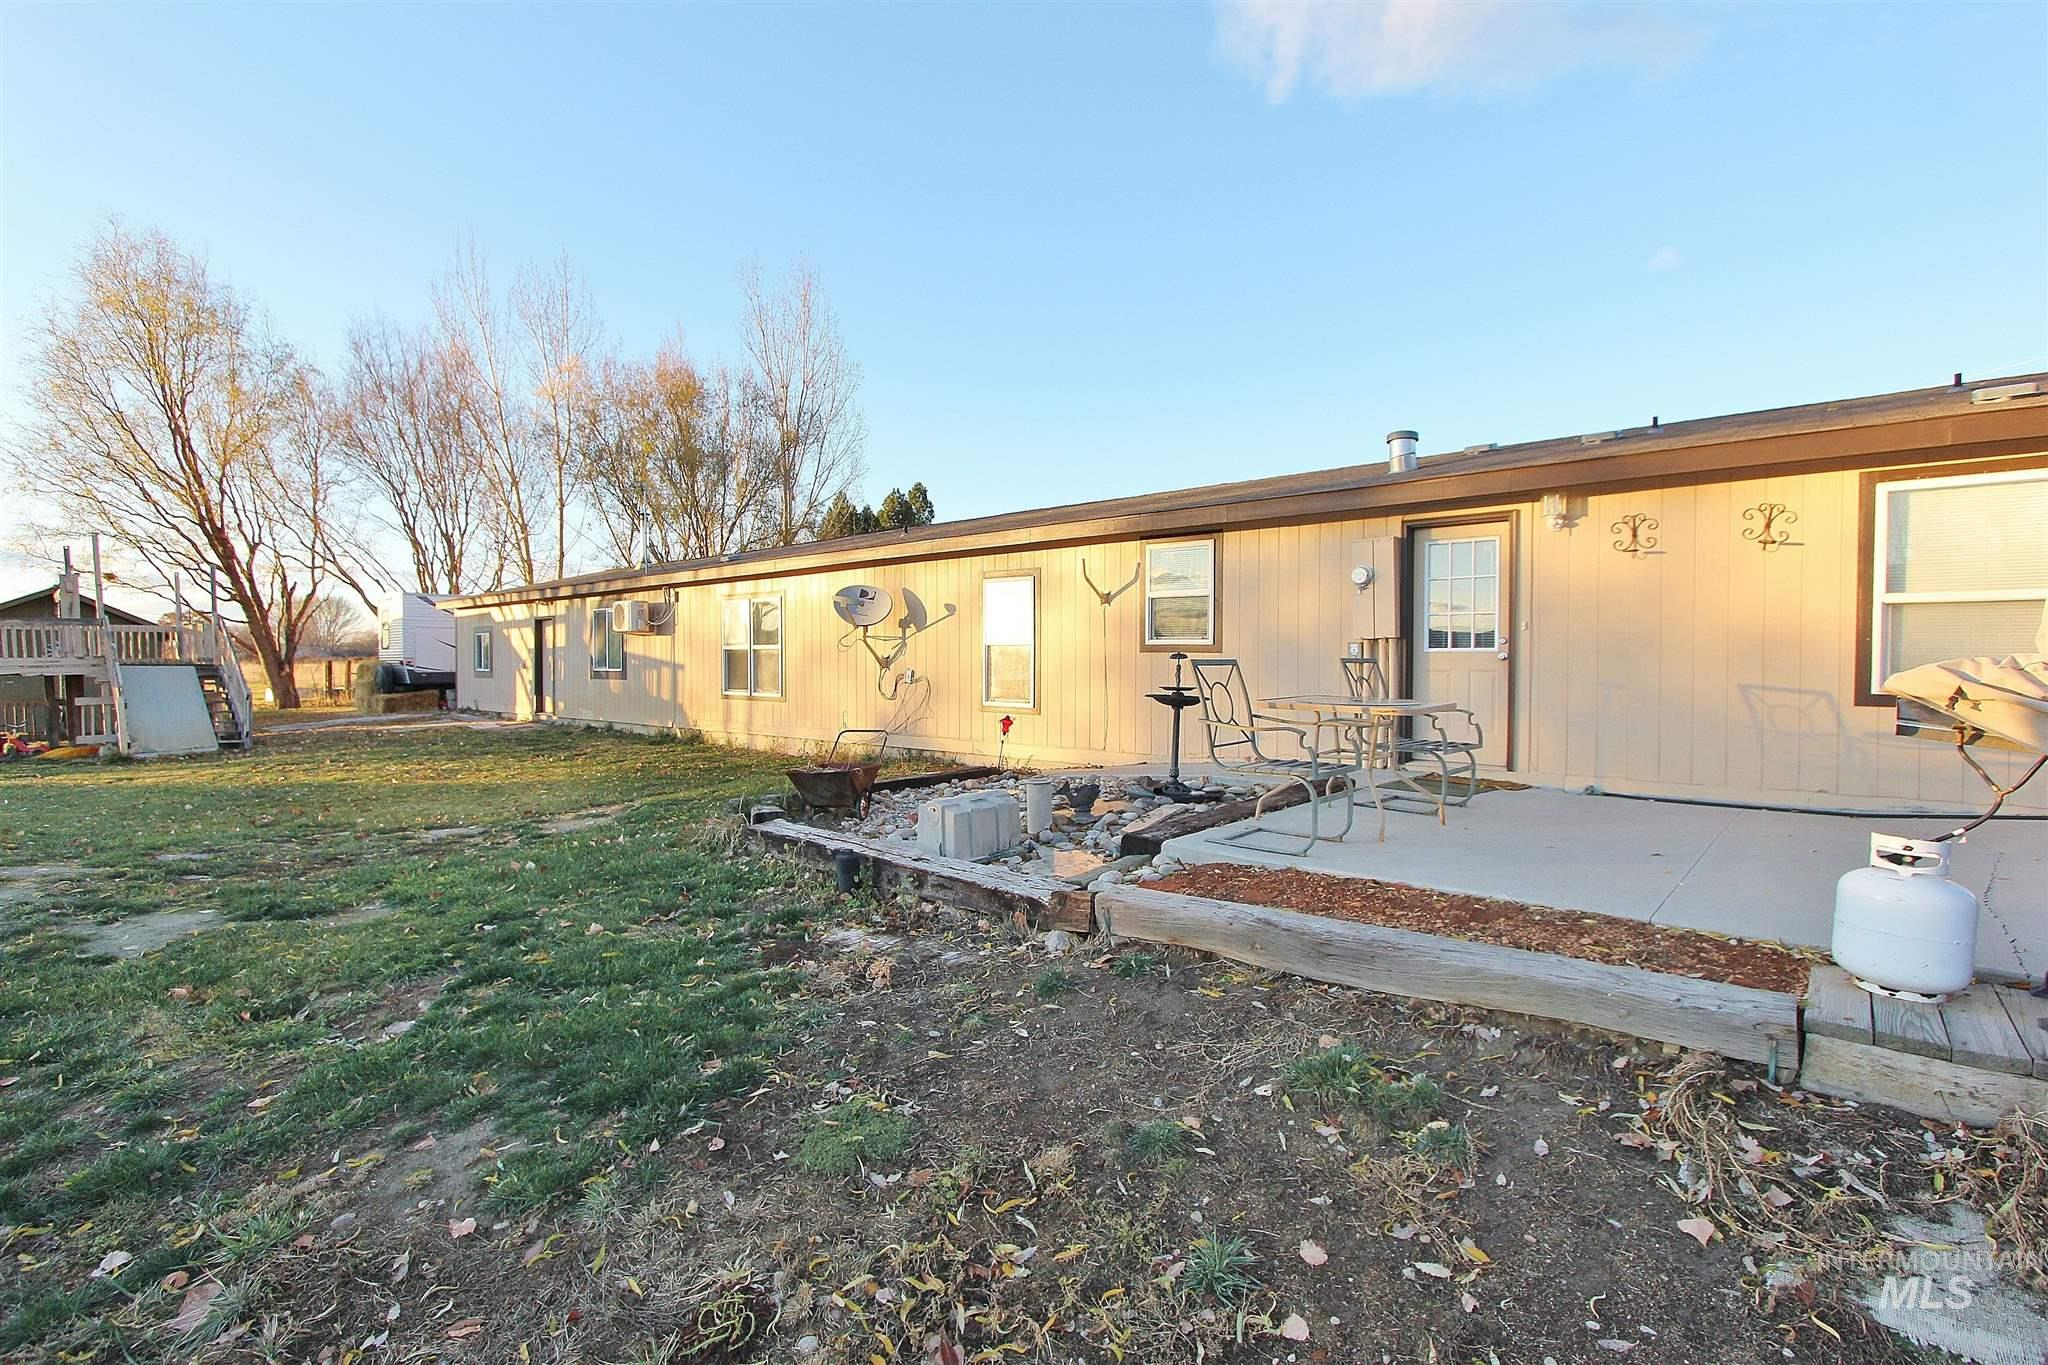 5297 Cascade Rd, Emmett, Idaho 83617, 3 Bedrooms, 2 Bathrooms, Residential For Sale, Price $479,000, 98790733